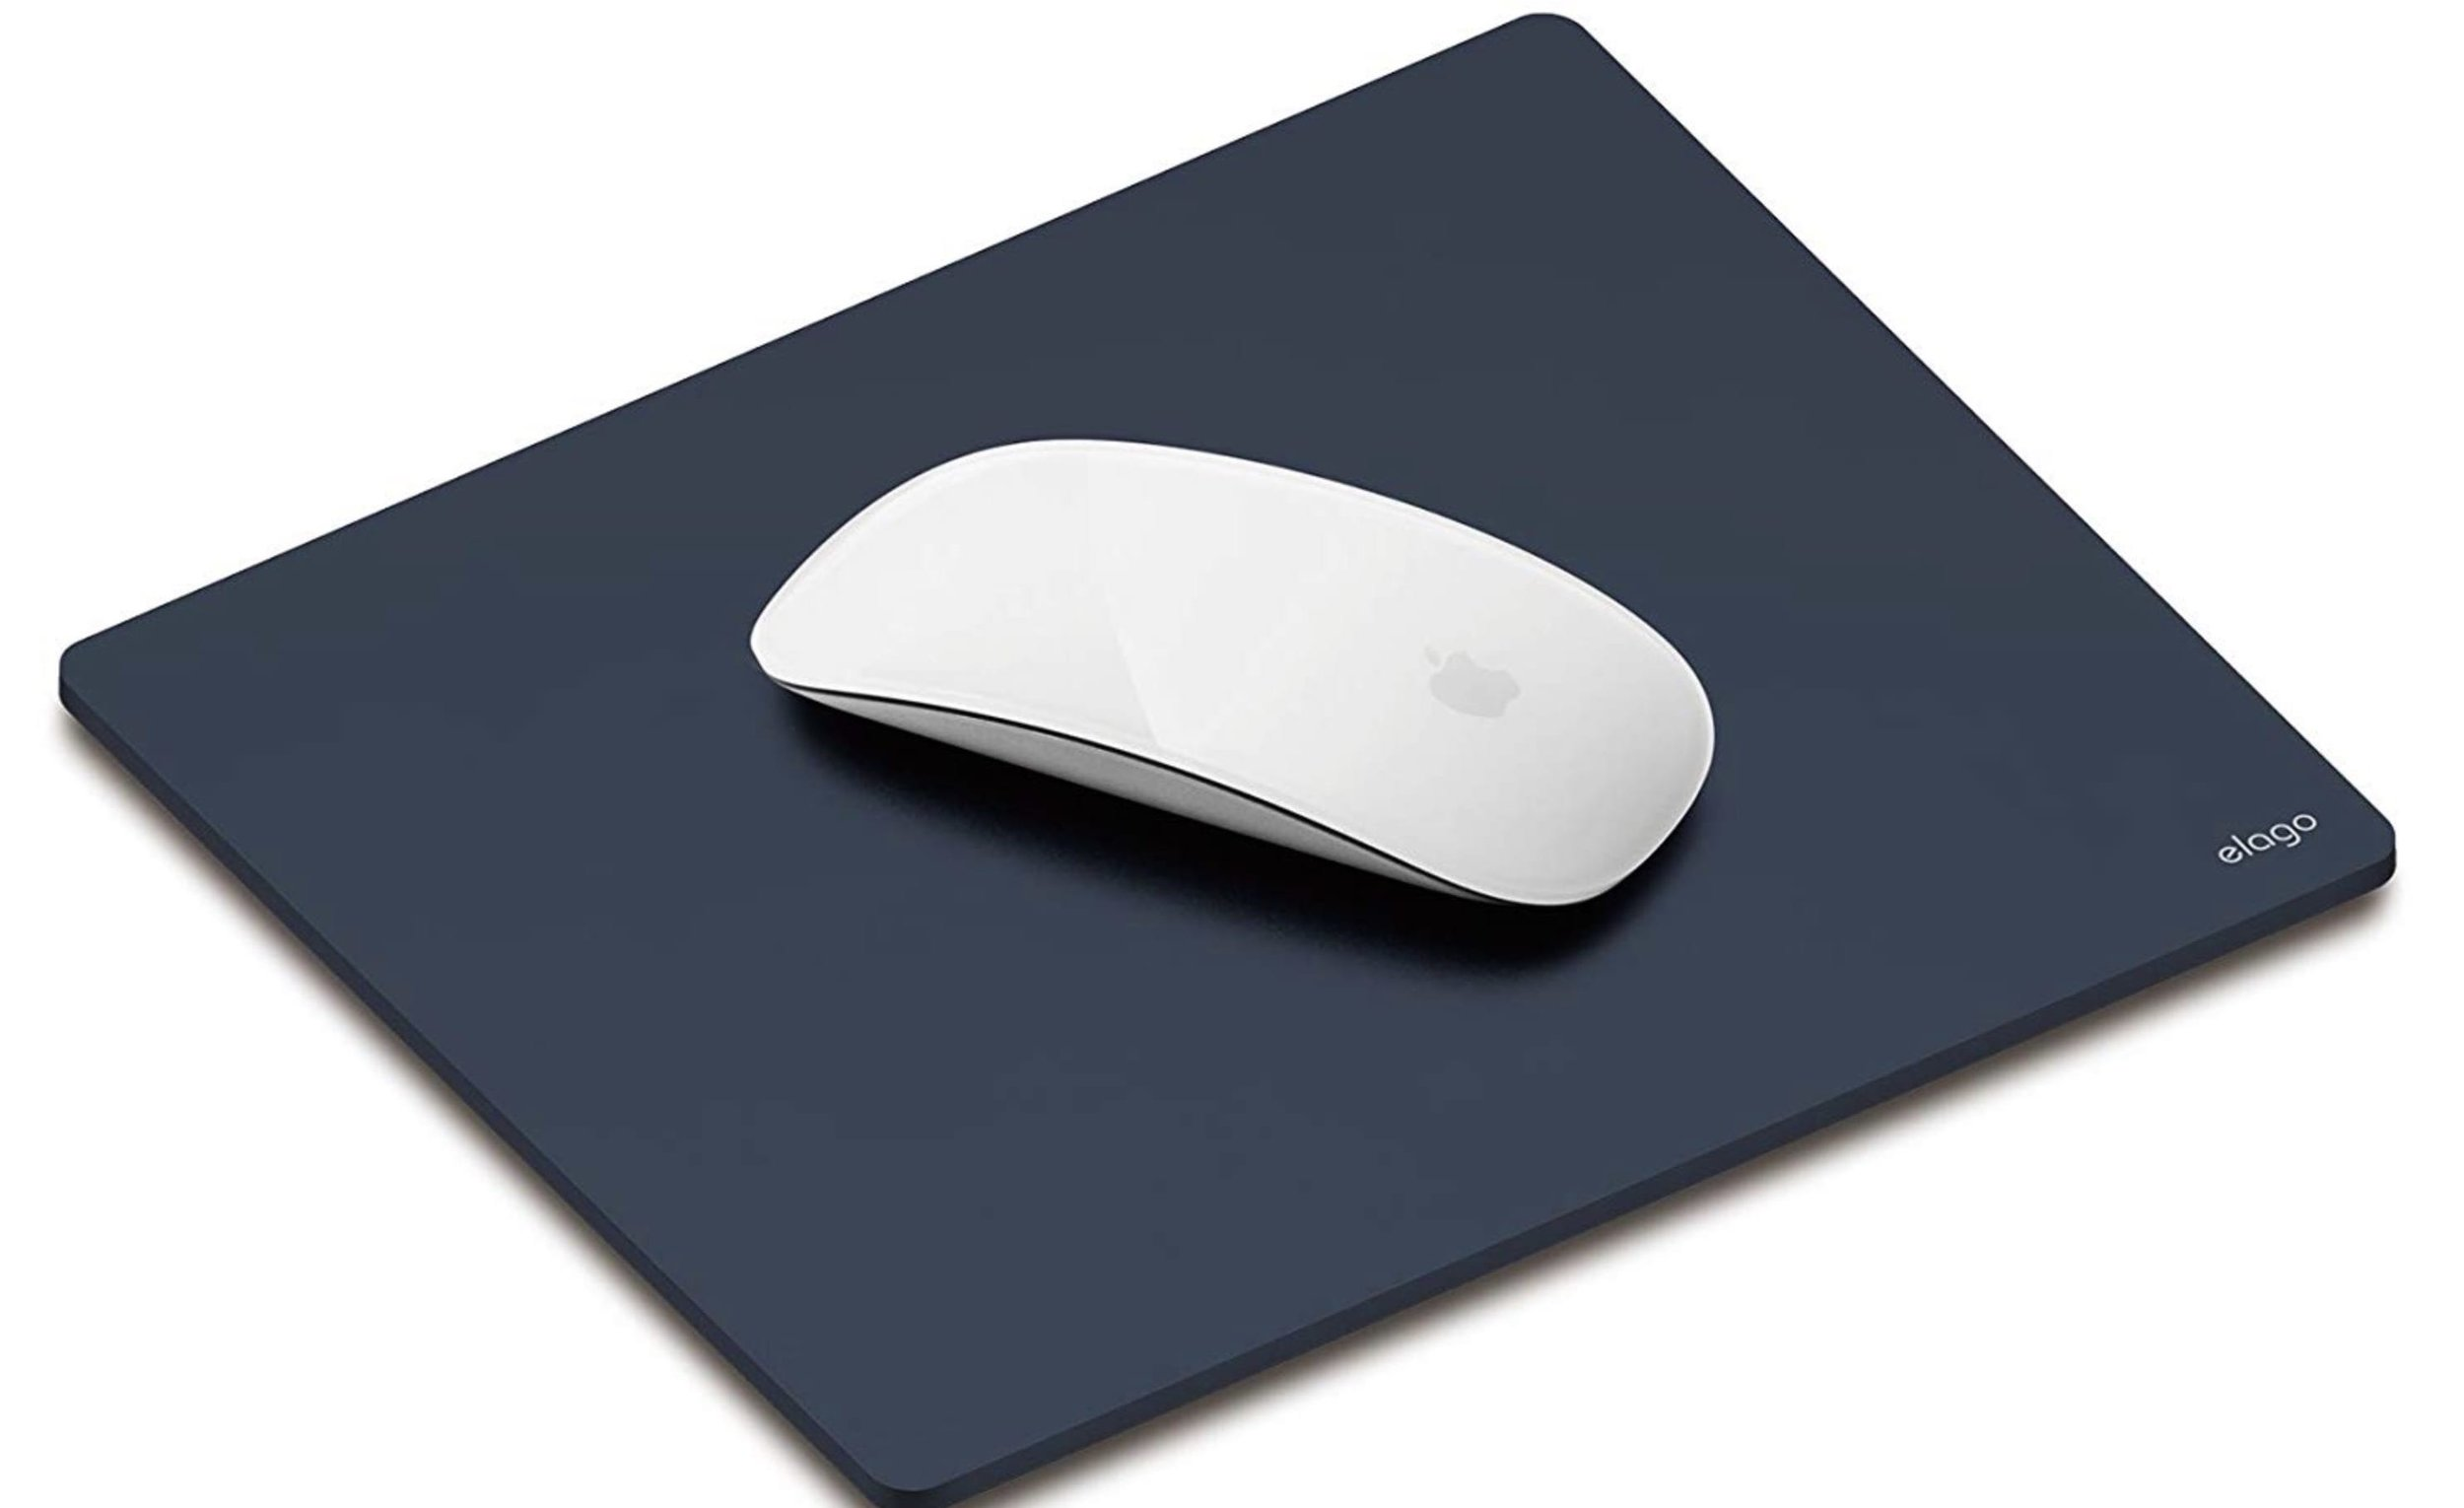 Mouse Pad 2.jpg